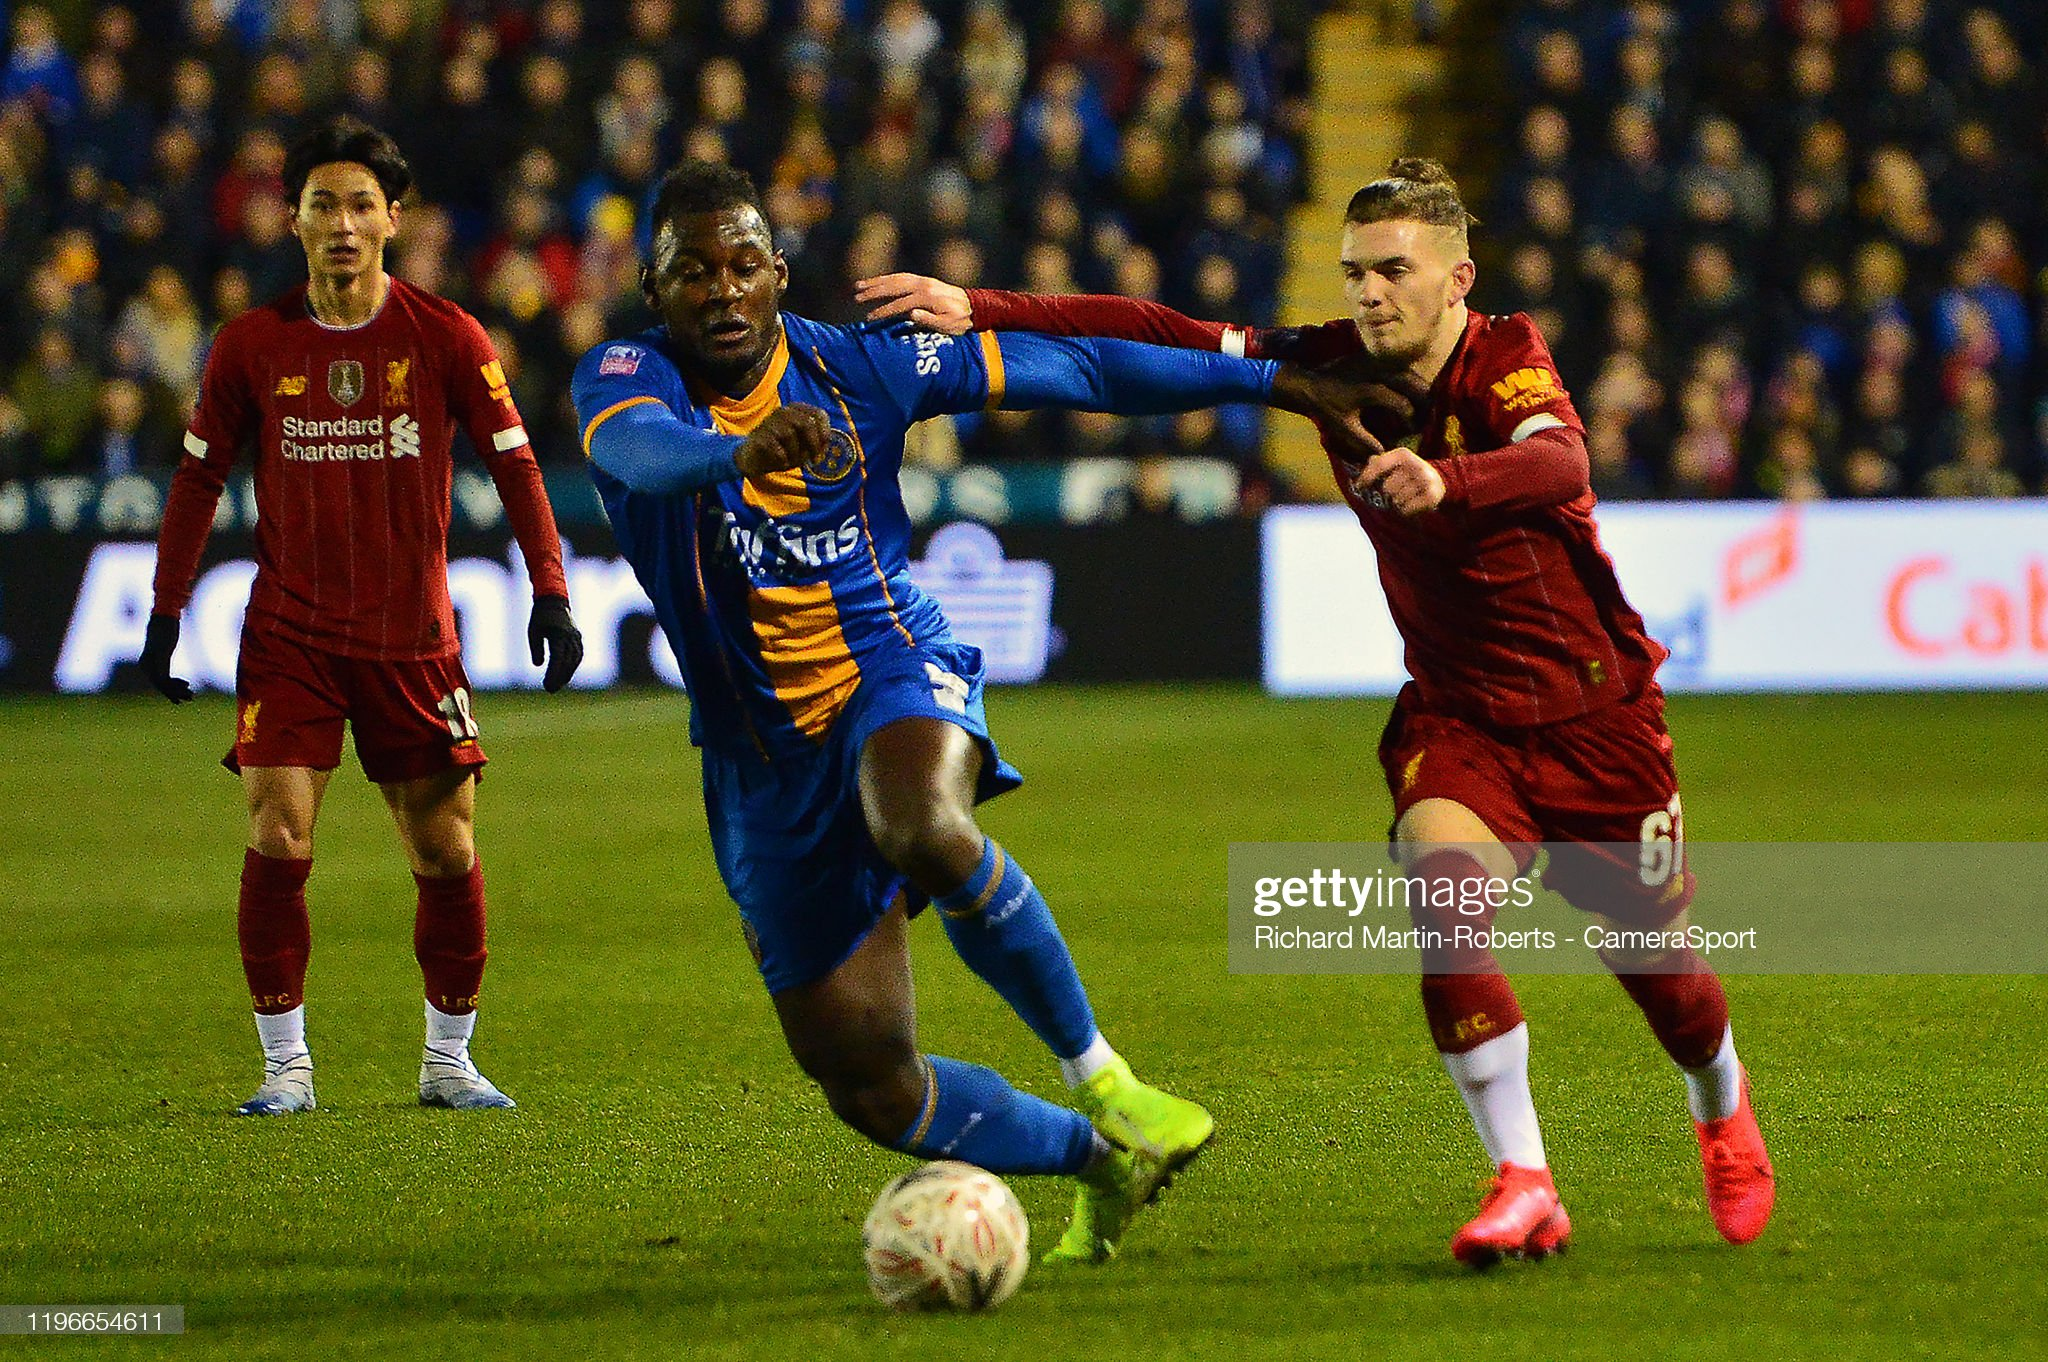 Liverpool v Shrewsbury preview, prediction and odds